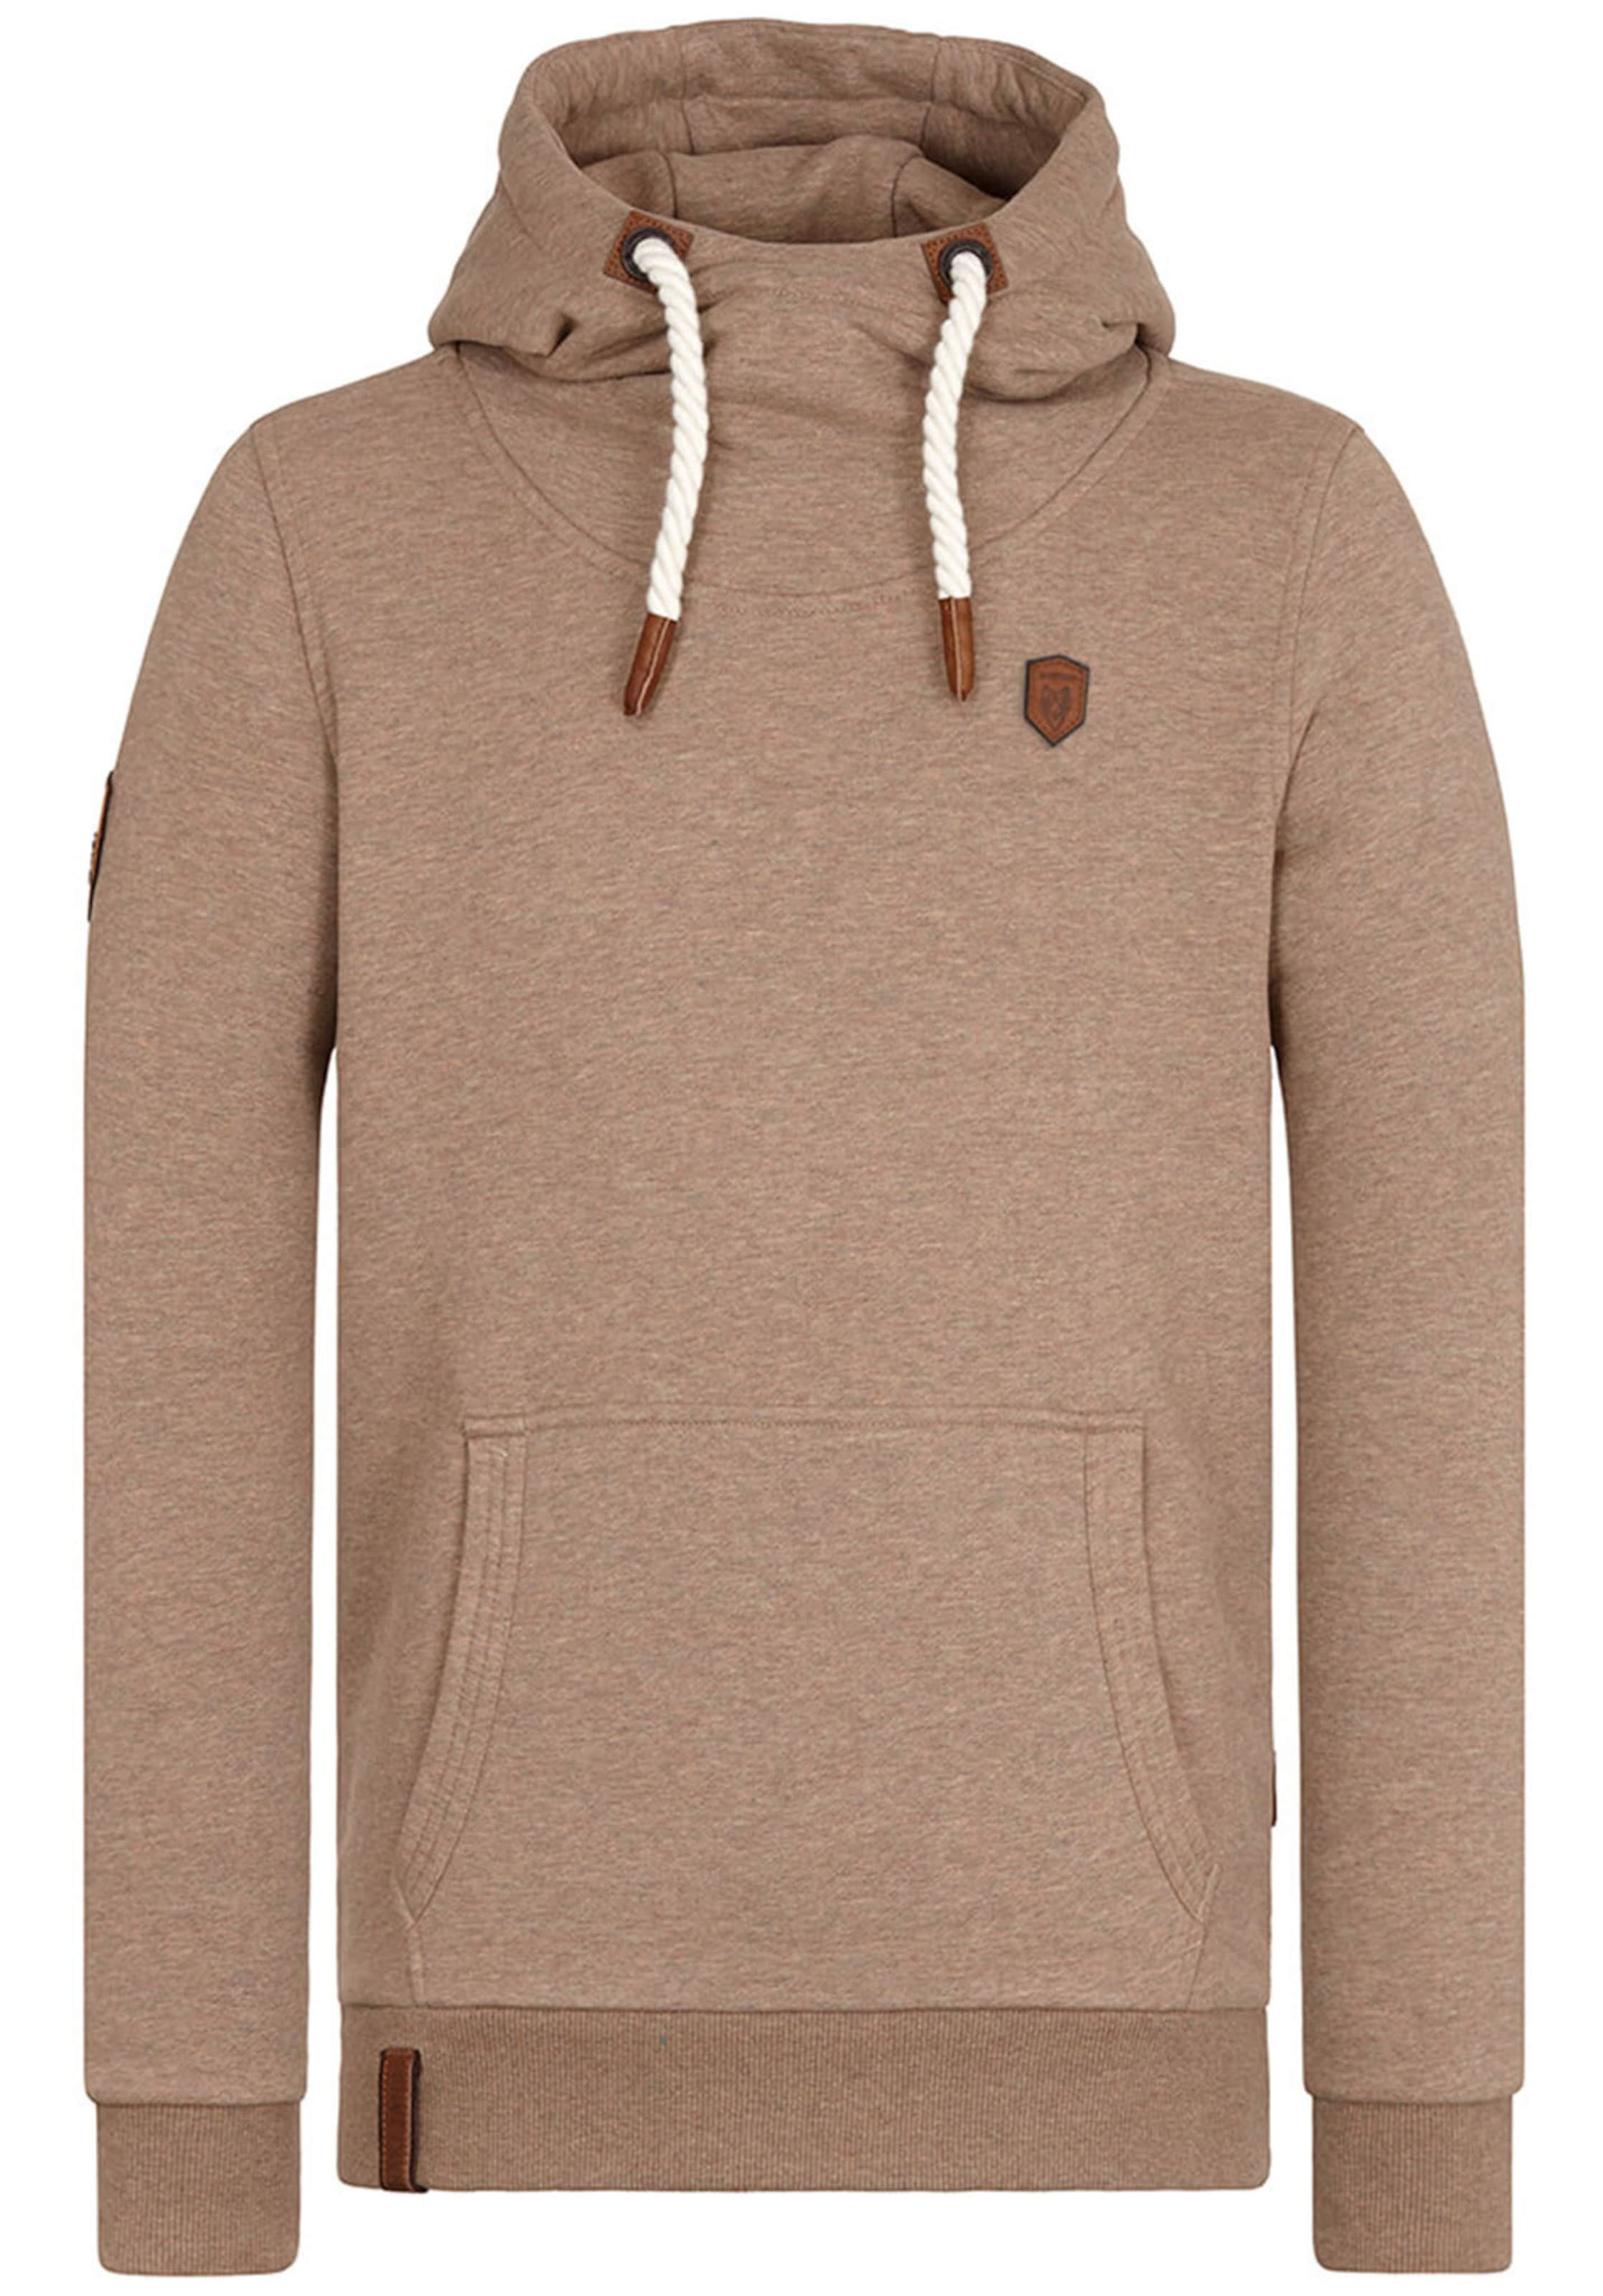 Sweat shirt Marron En Naketano 'supapimmel' AR354jL